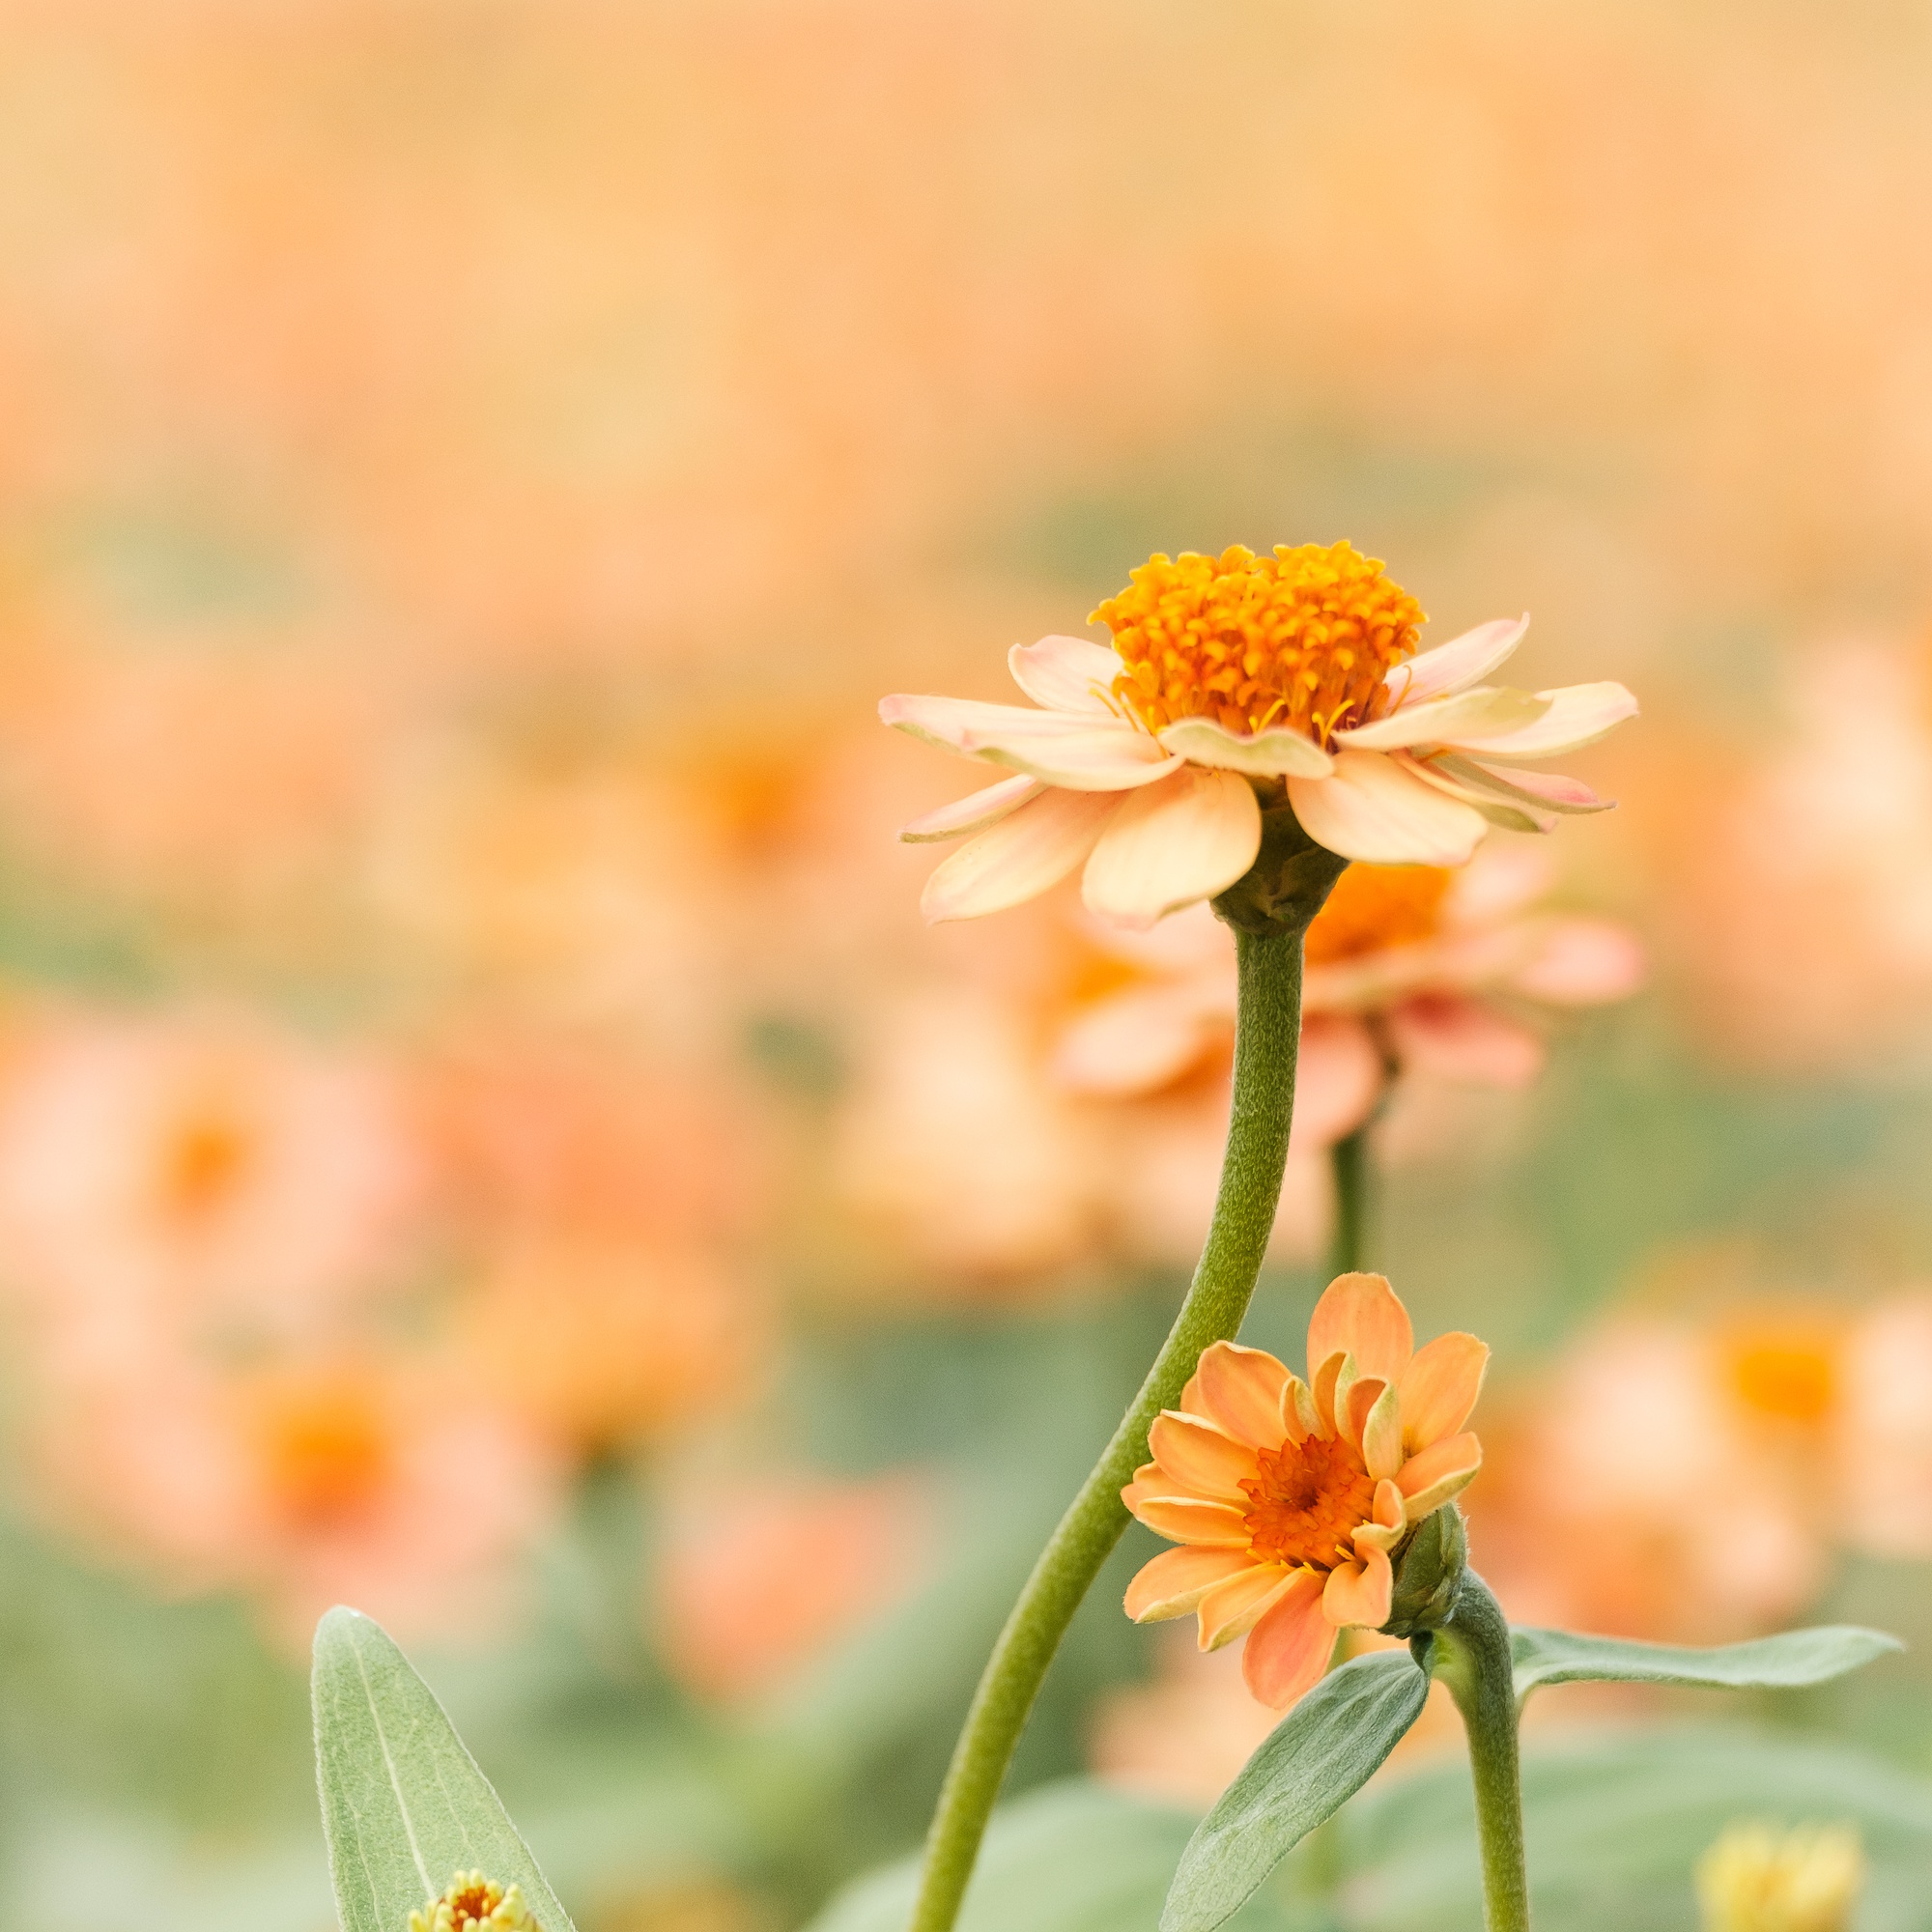 Orange flowers in the garden and a blurred background, AF point selection.